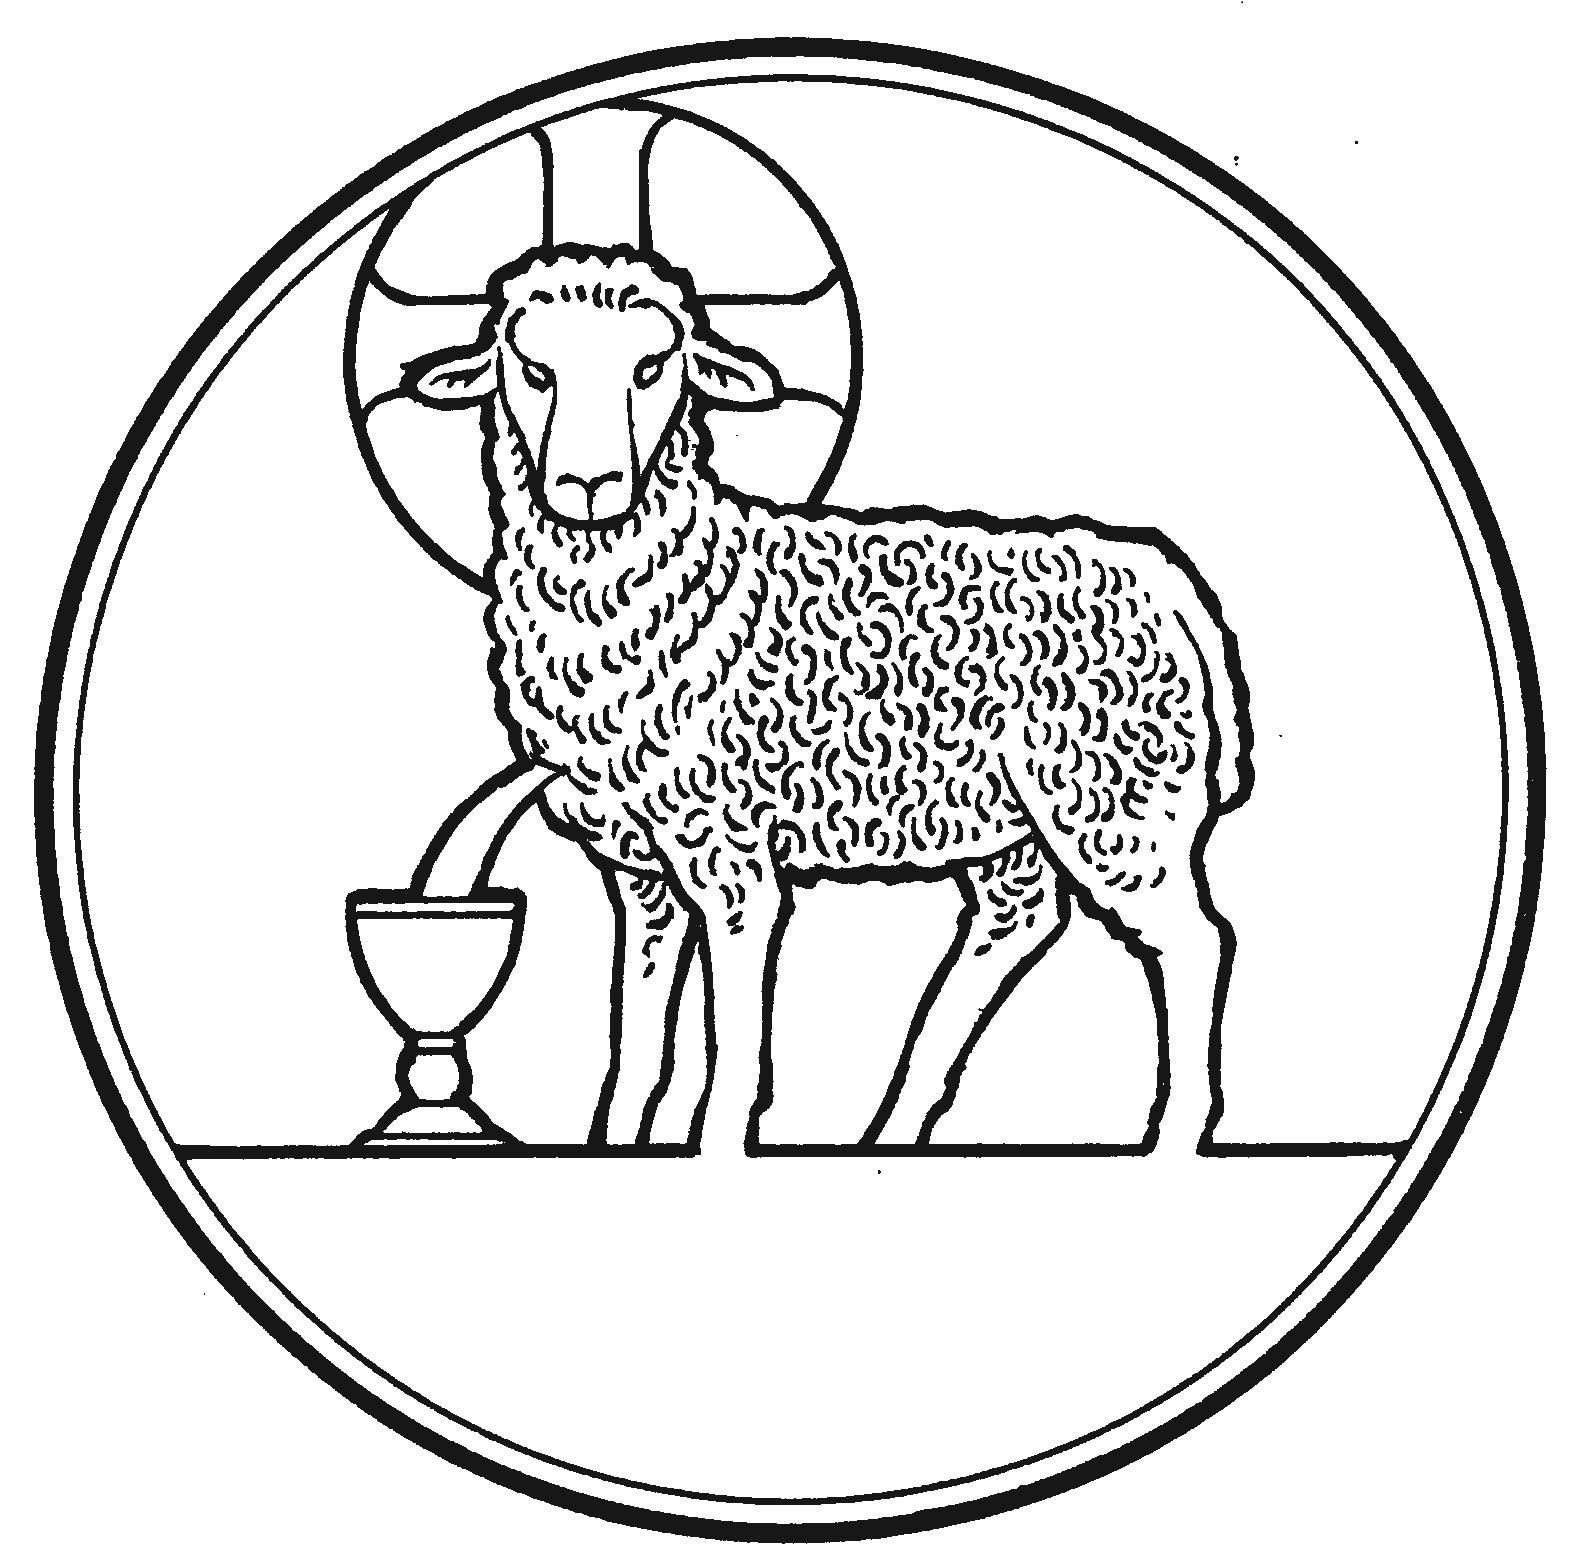 Lamb of God Clip Art Black and White Take a look at the Immanuel.